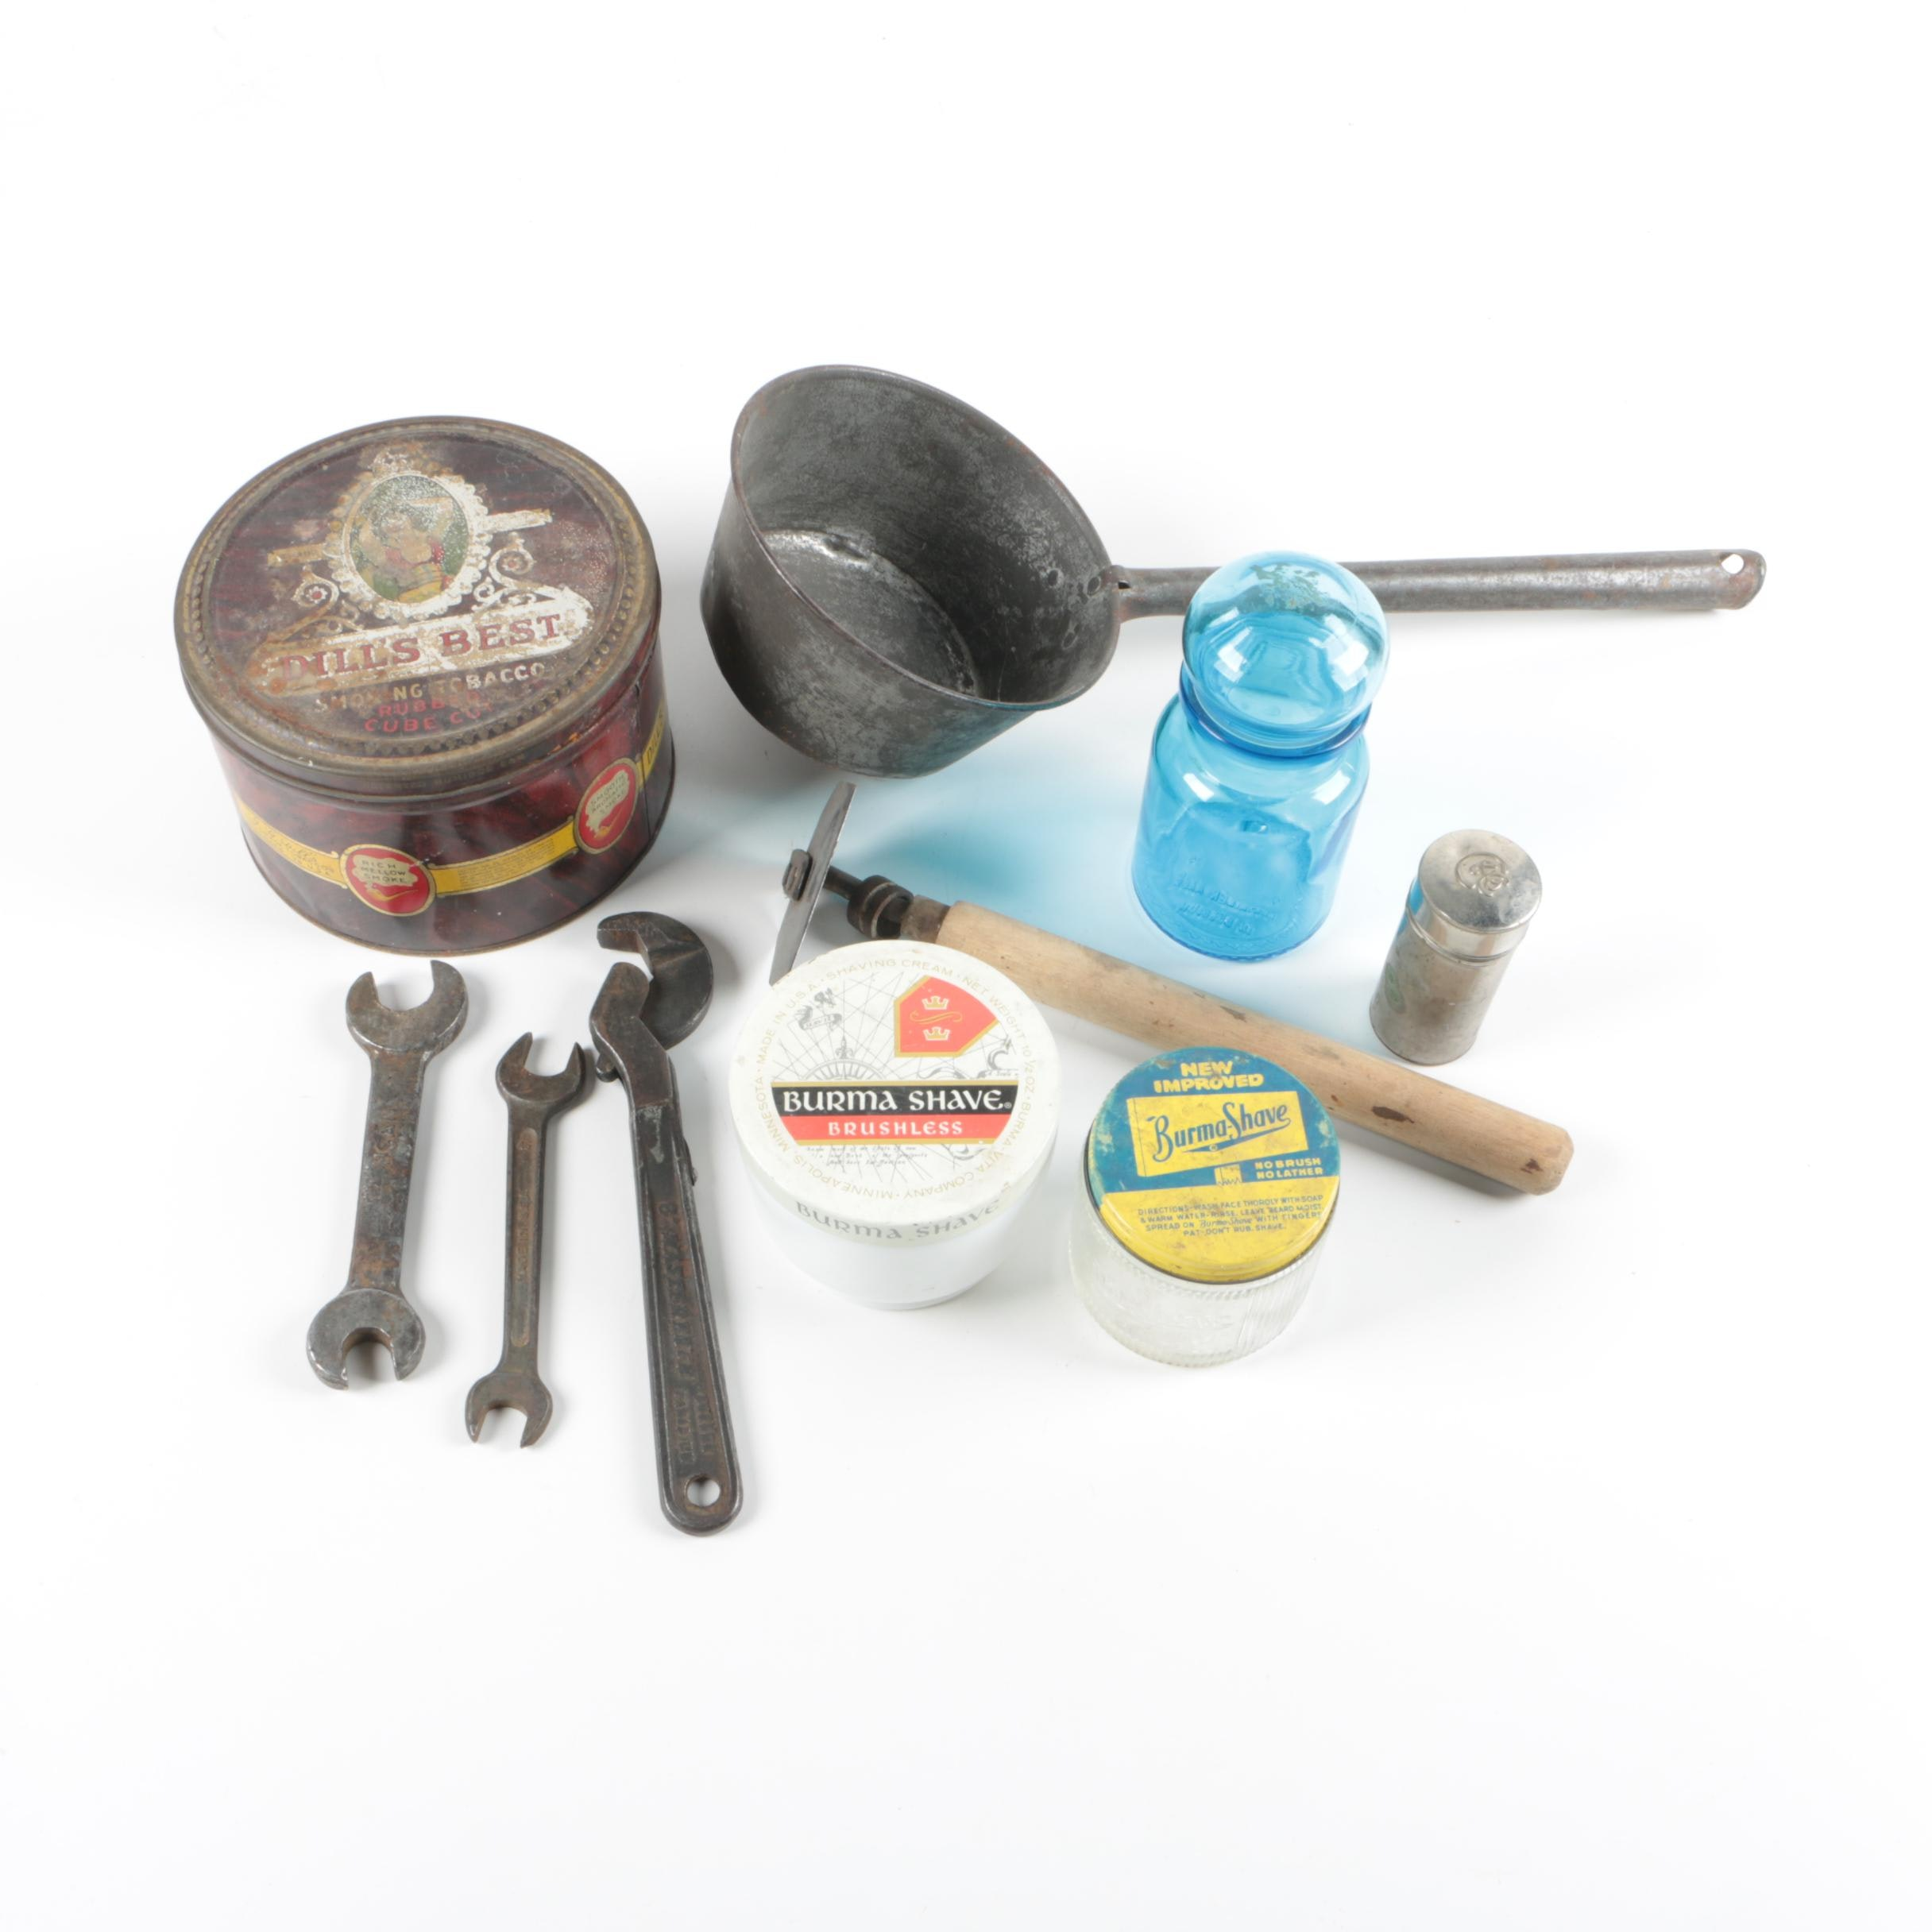 Dill's Best Tobacco Tin, Hand Tools, Glass Jar and Other Collectibles